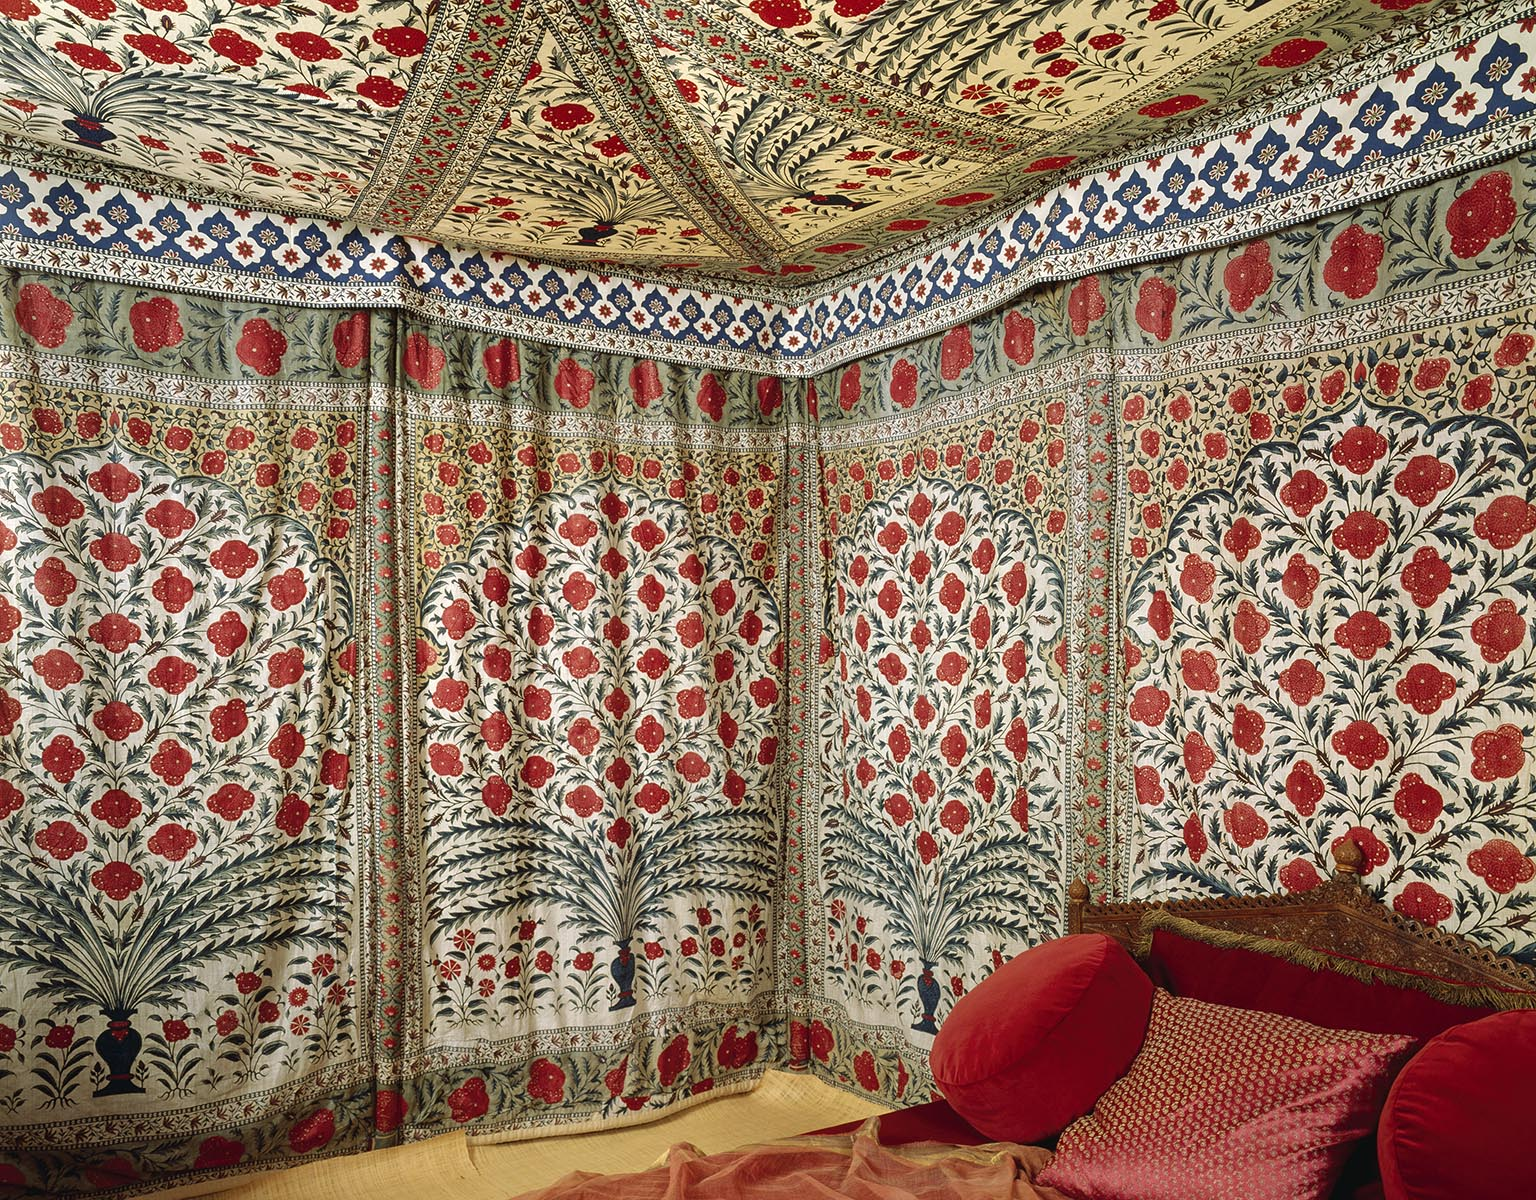 3. The Fabric of India, Victoria and Albert Museum. 50% off with National Art Pass - Tipu's Tent, 1725-1750. National Trust Images